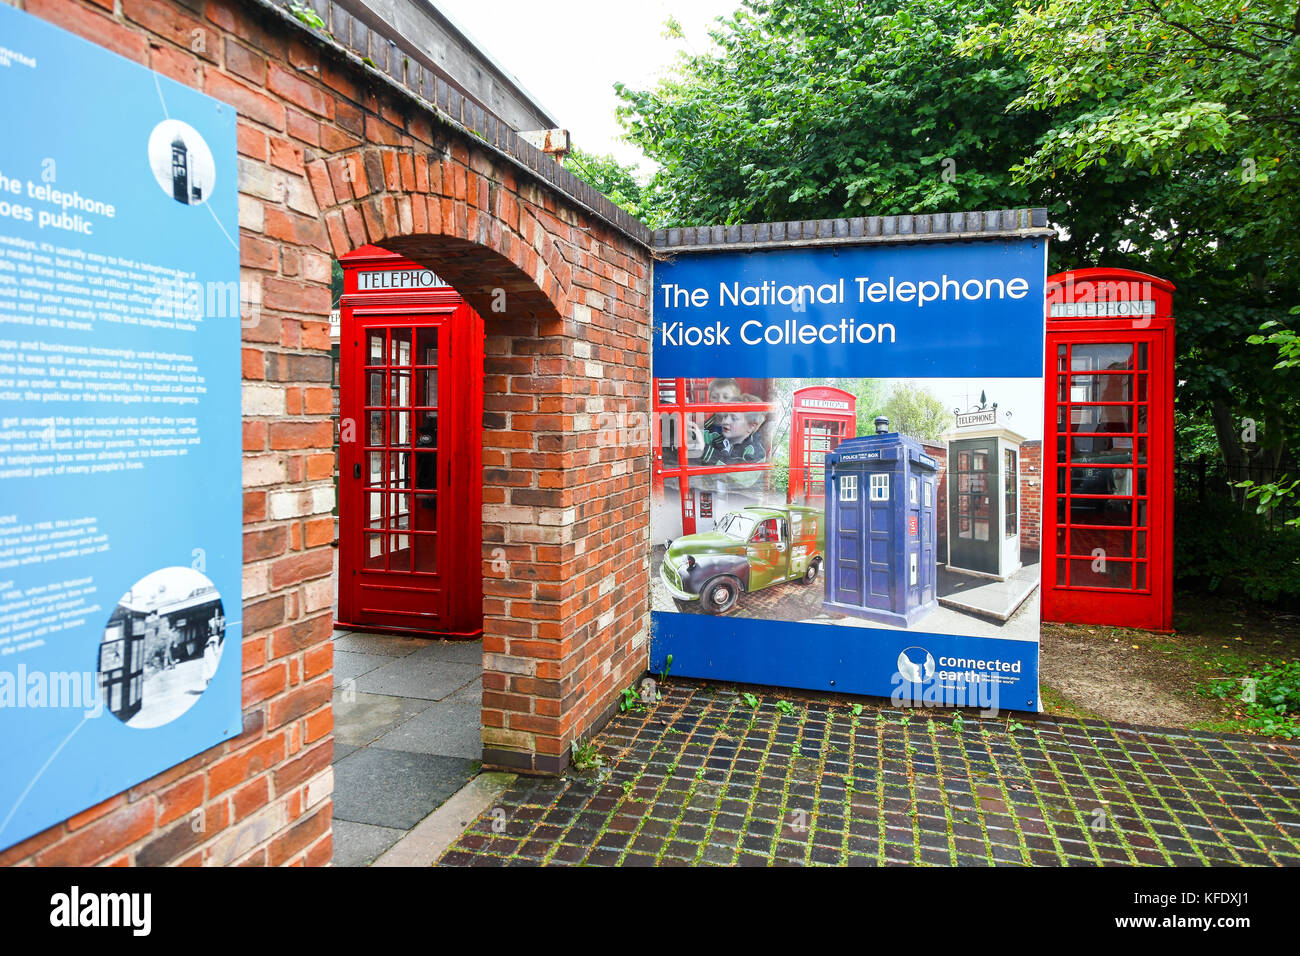 The entrance to the National Telephone Kiosk Collection at the Avoncroft Museum of Buildings, Stoke Heath, Bromsgrove, - Stock Image